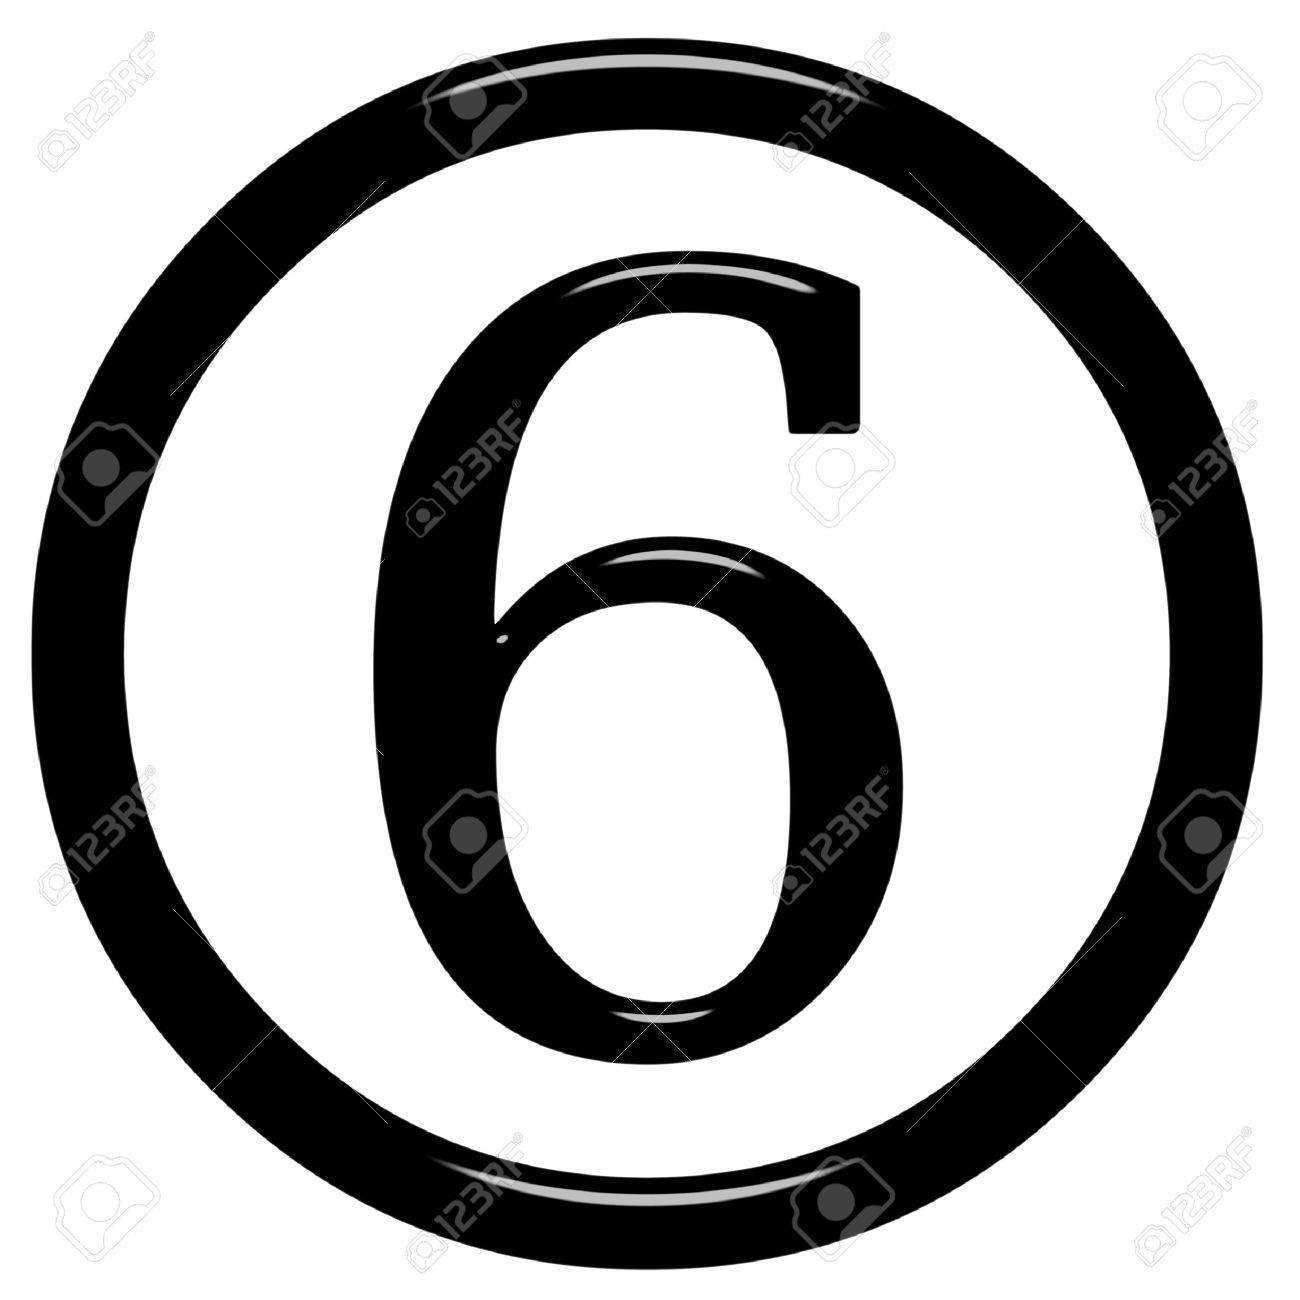 Image result for free picture of the number 6